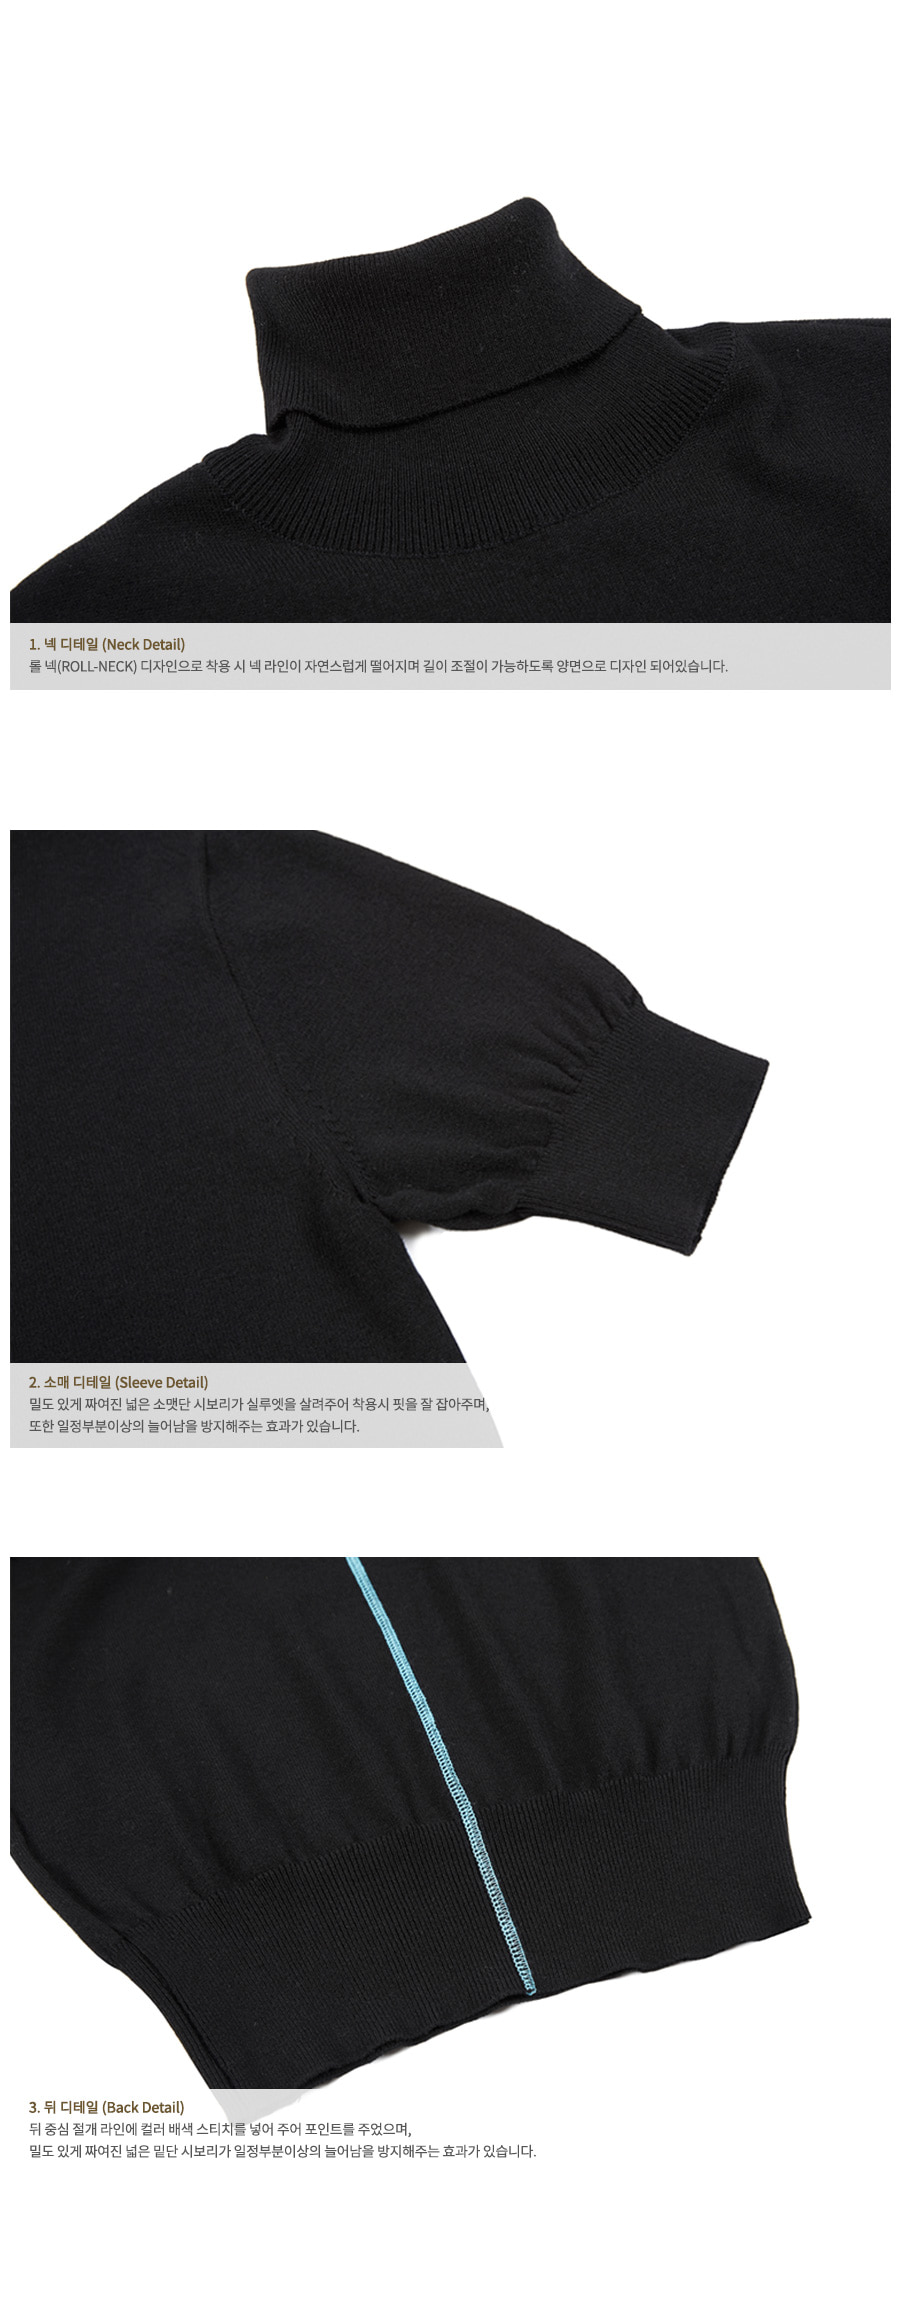 앤더슨벨 RIBBED SHORT SLEEVE TURTLENECK SWEATER BLACK atb291w